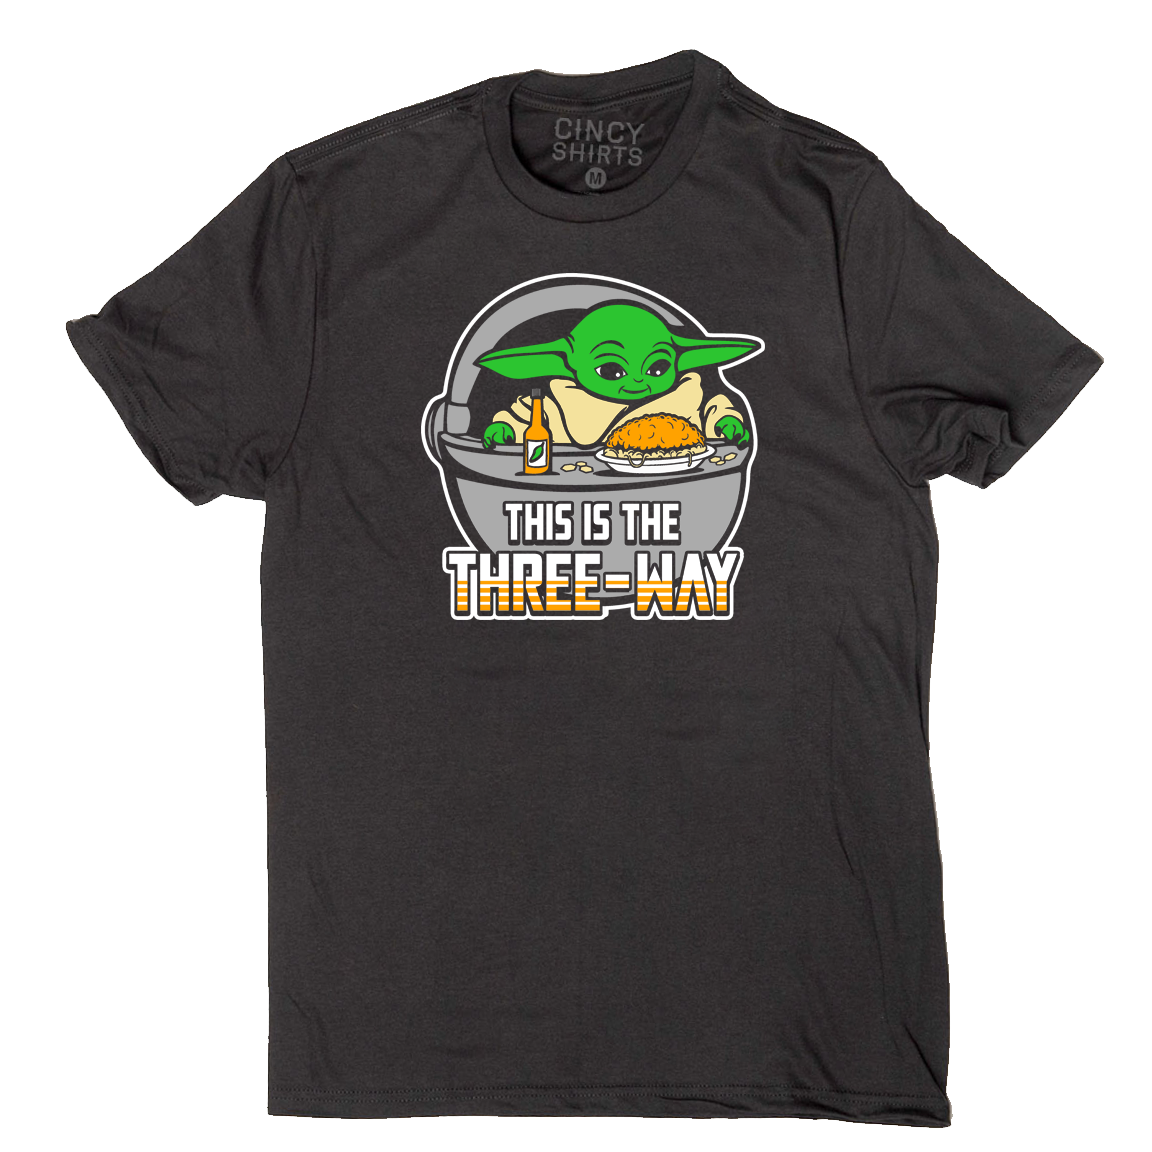 This is the Three-Way - Cincy Shirts